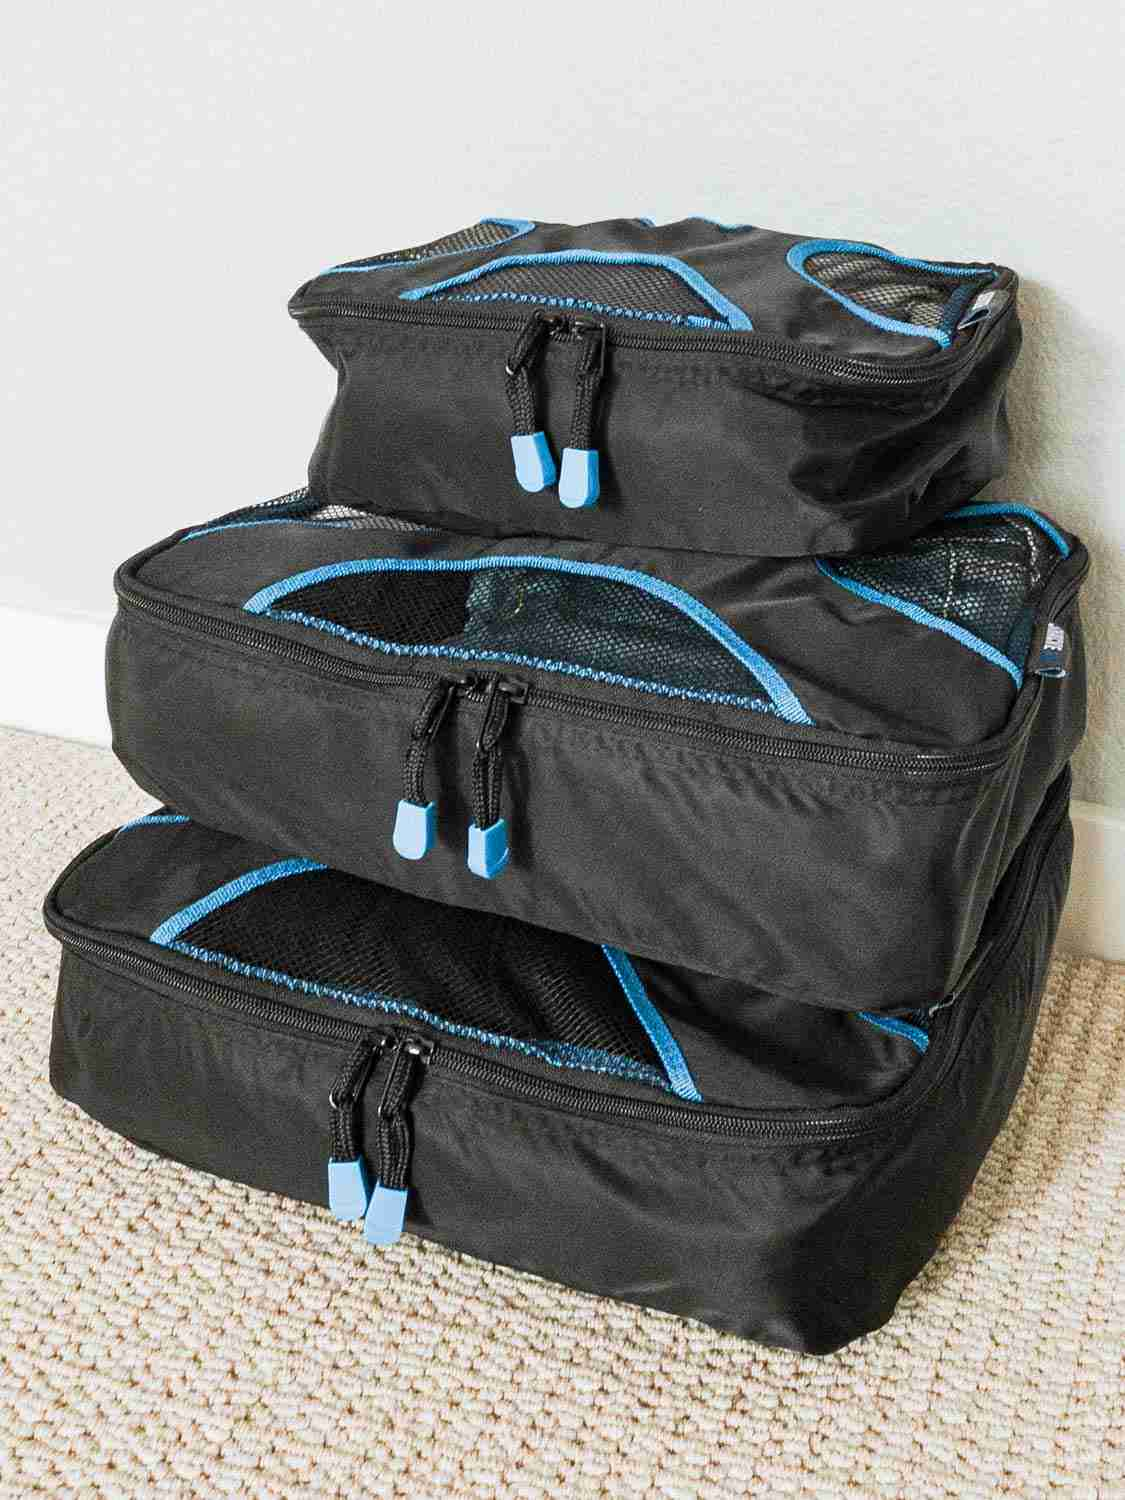 Shacke Pak packing cubes stacked and ready to pack for minimalist travel